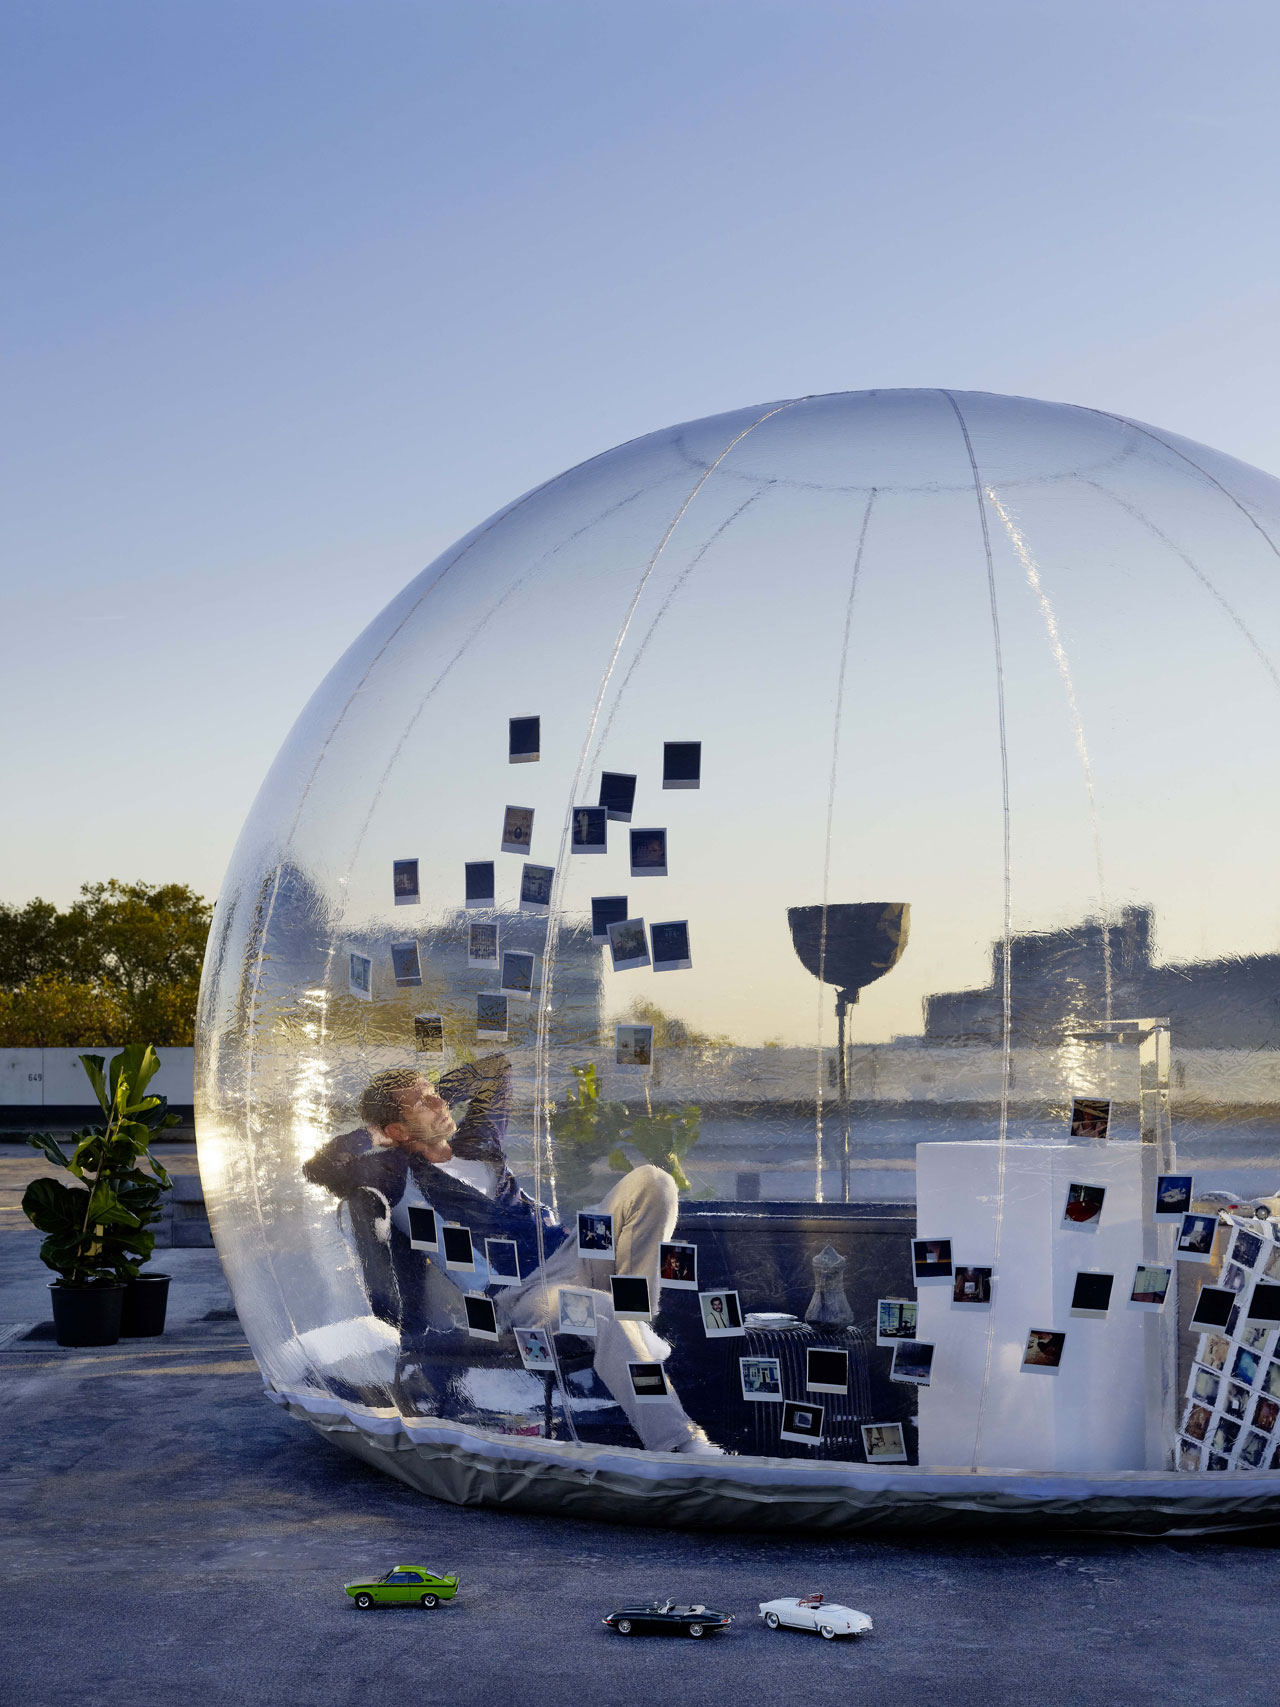 Bathroom bubble eclectic living home for Urban nature